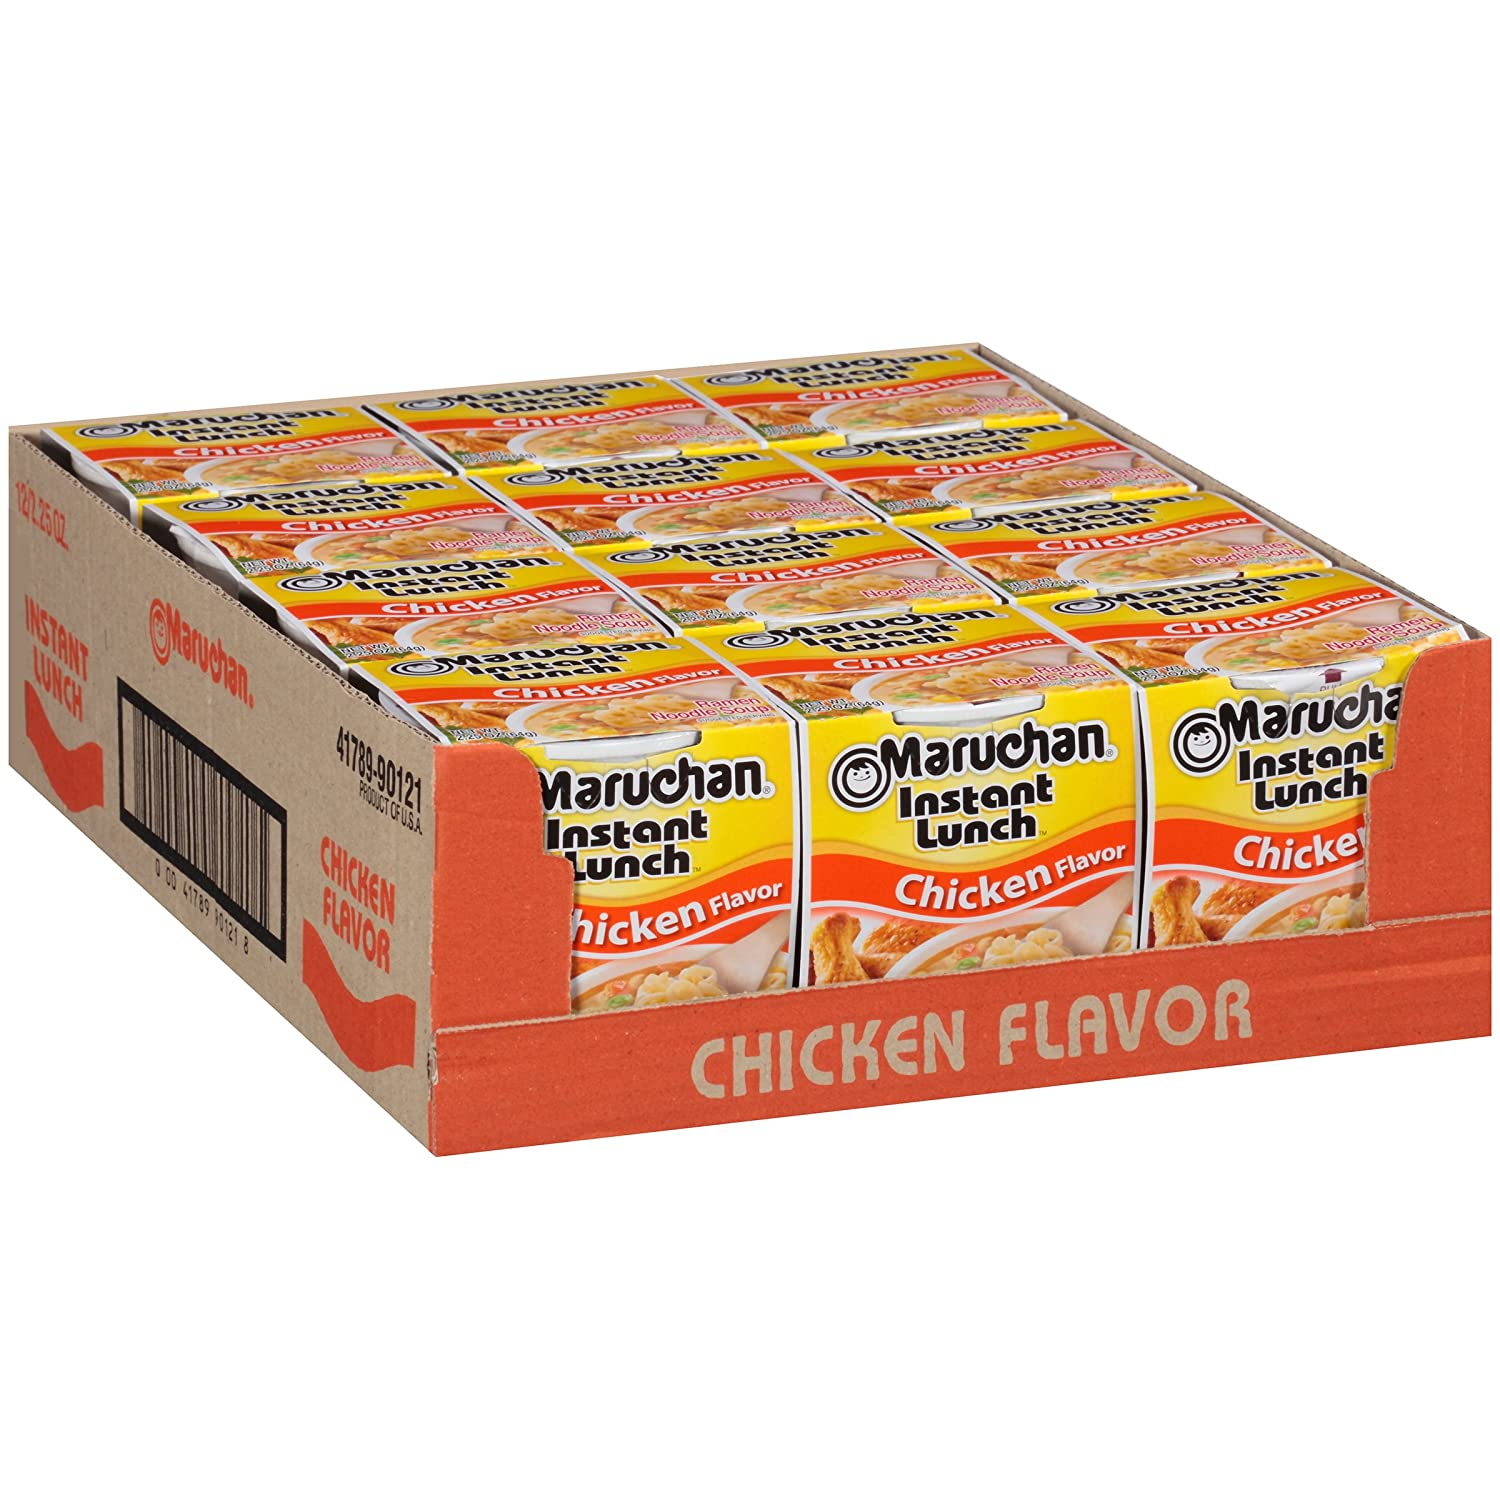 Maruchan Instant Lunch Chicken Flavor, 2.25 Ounce (Pack of 12)